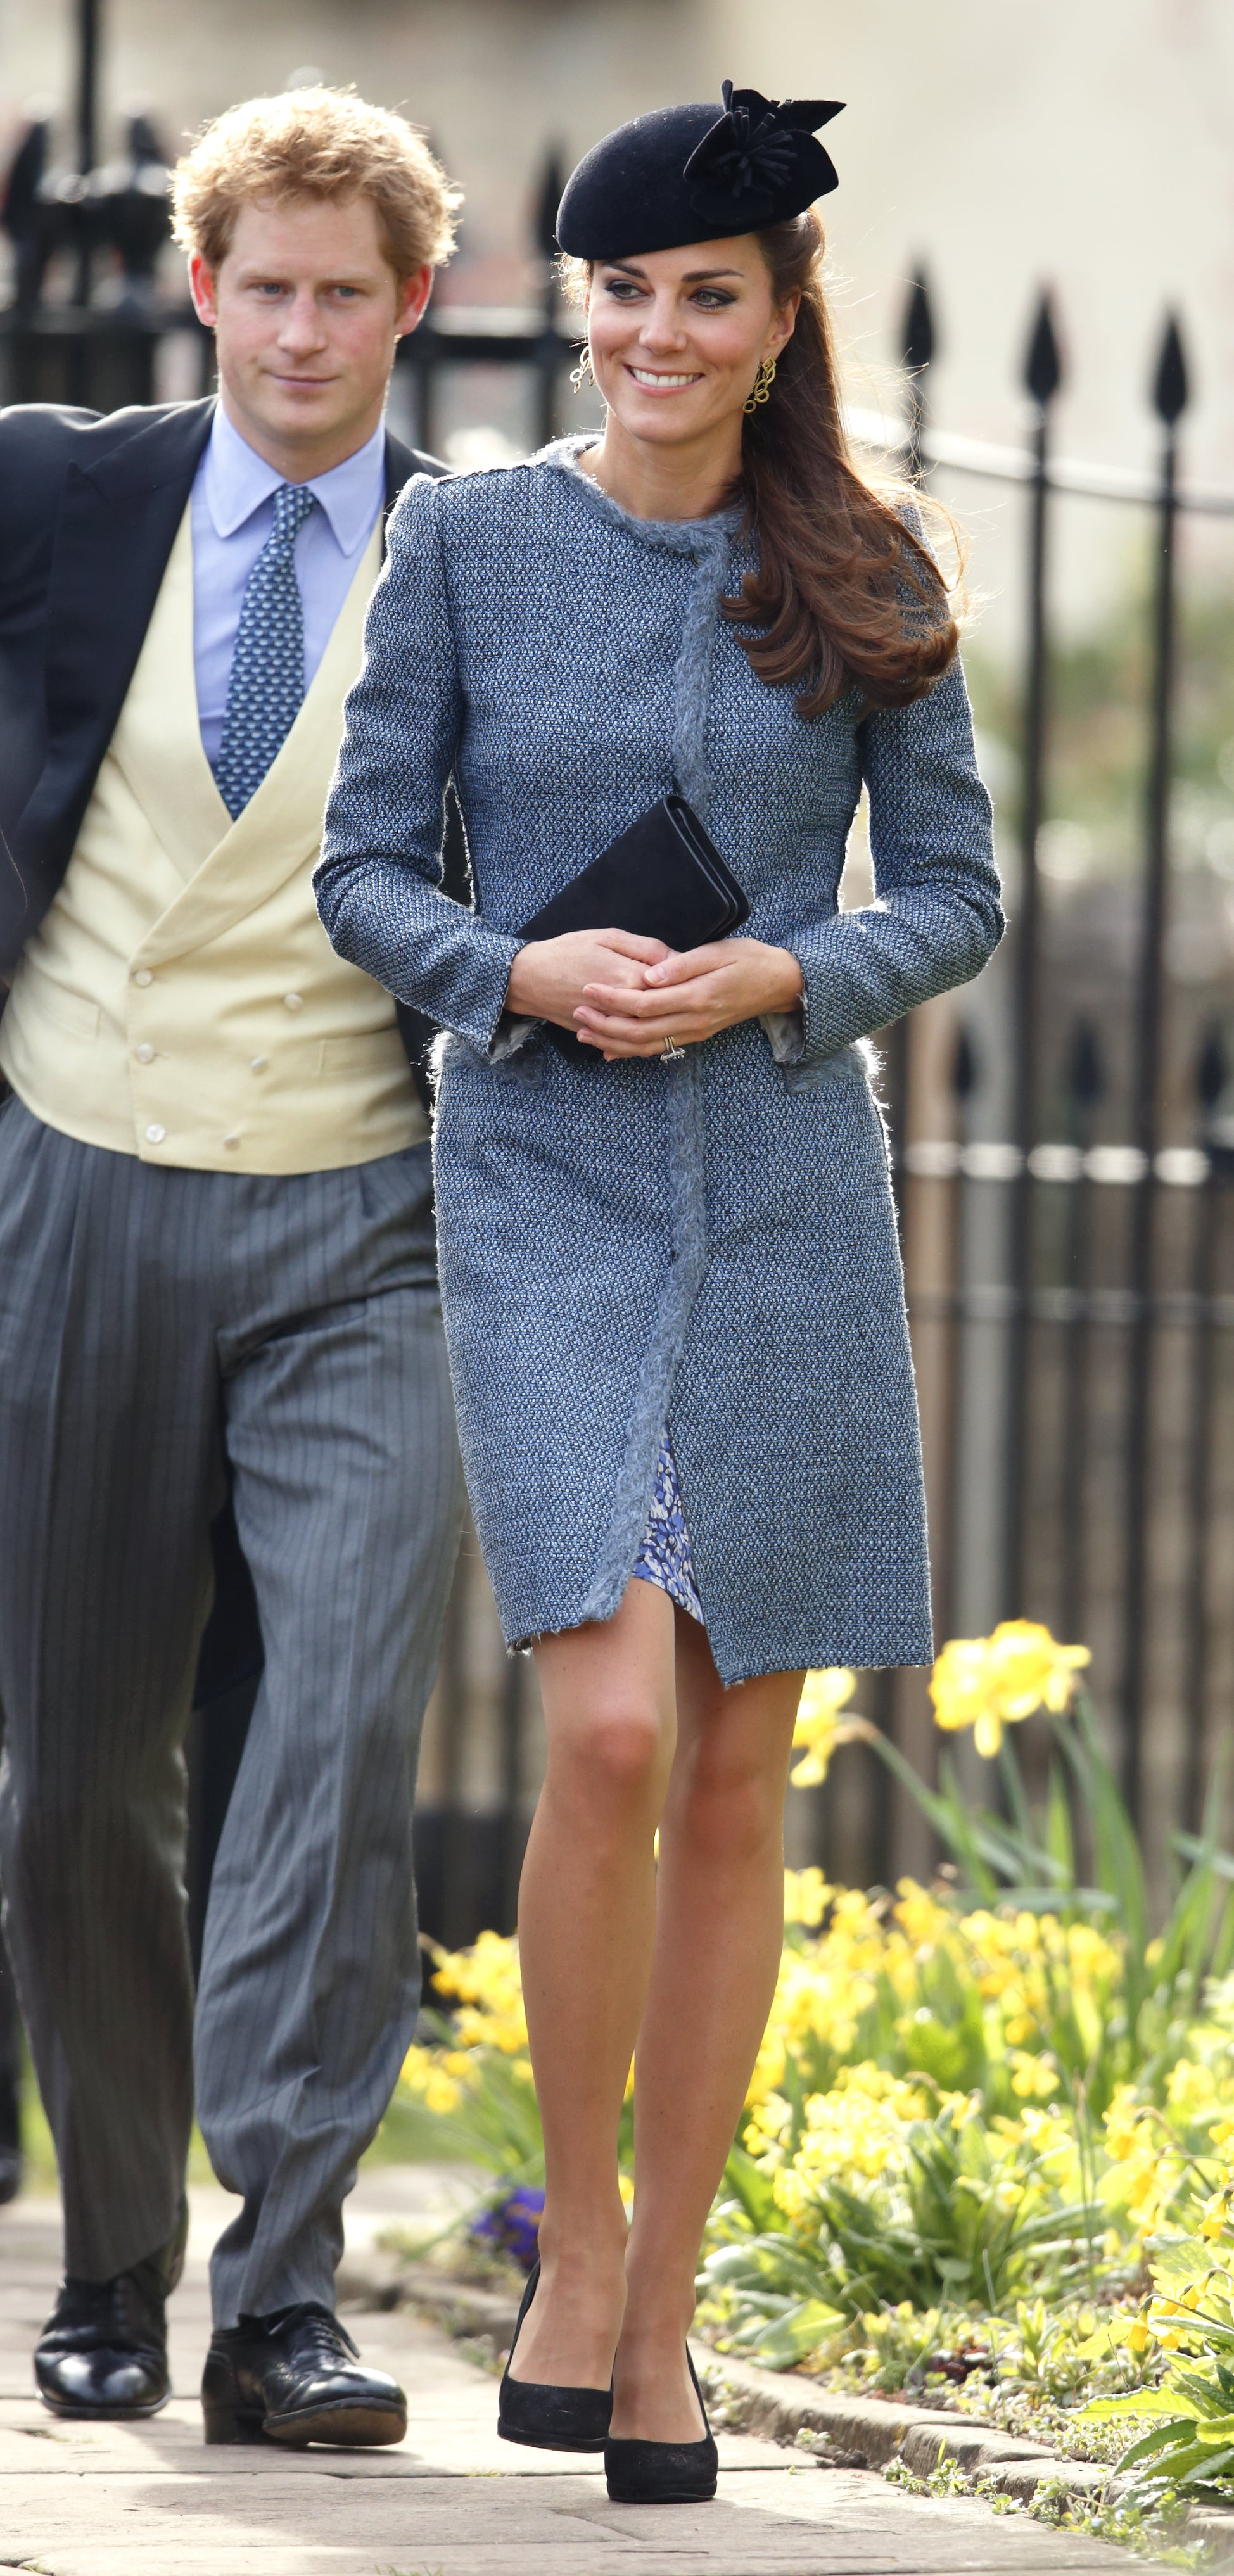 Kate Middleton at a Friend's Wedding in 2014